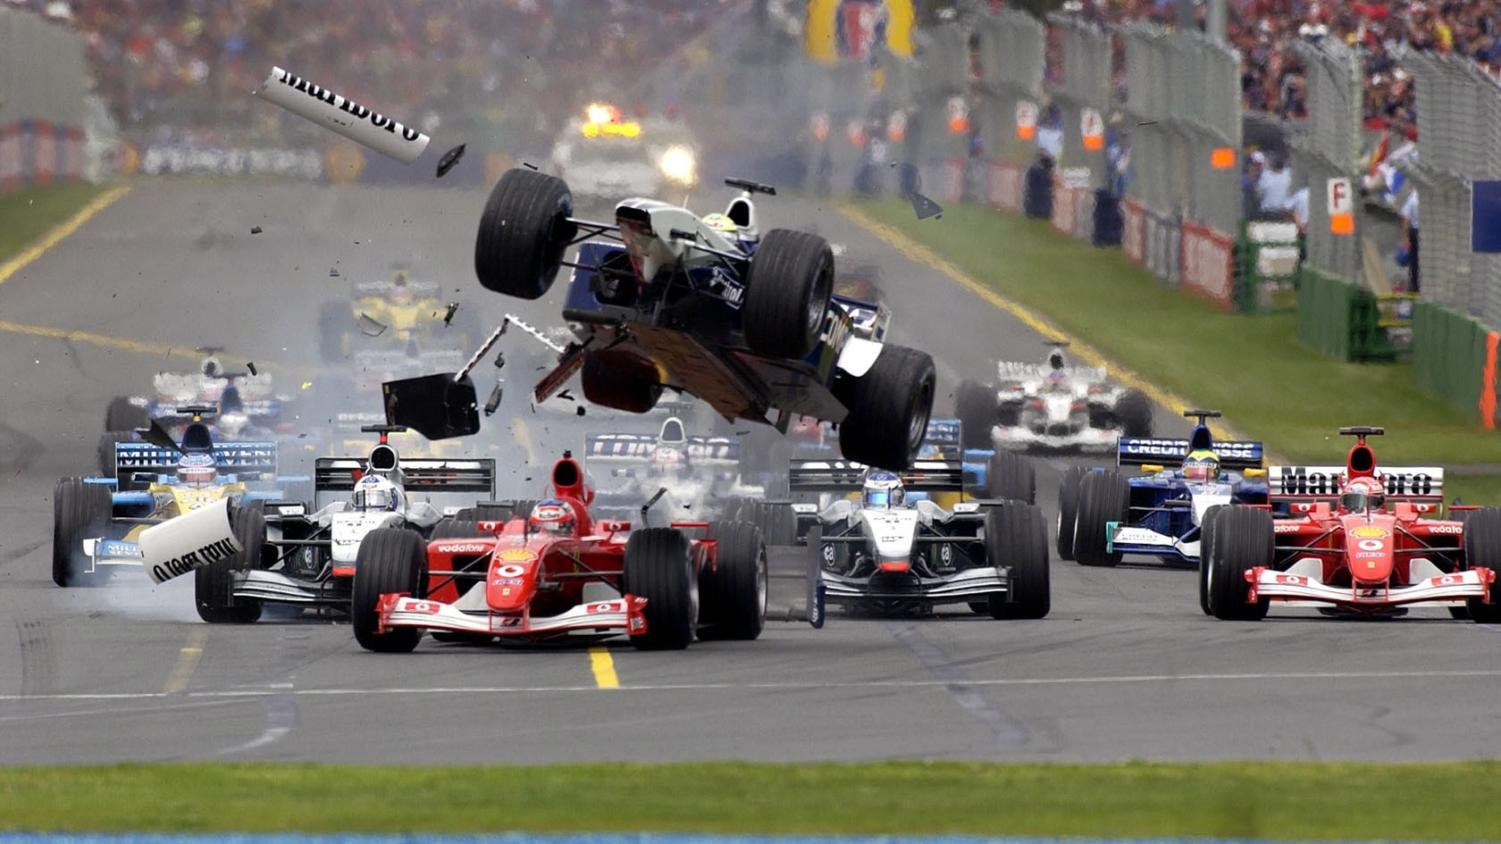 Ralf Schumacher takes flight in his Formula 1 car at the 2002 Australian Grand Prix in Melbourne. Labled for reuse by FIA and Formula 1